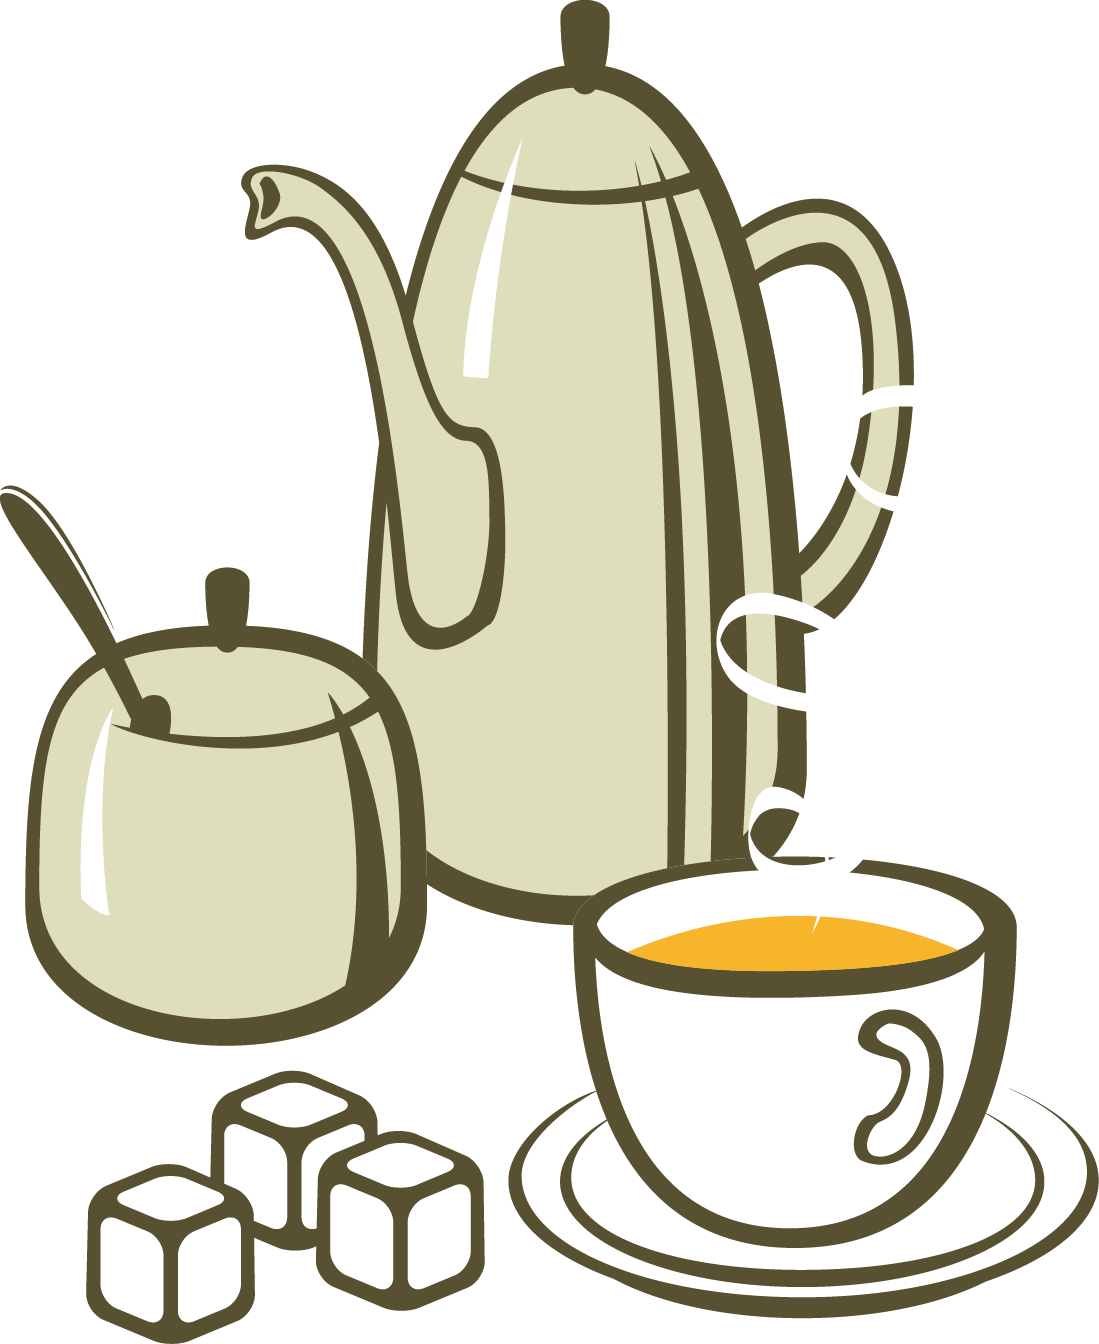 Tea coffee breakfast european. Clipart cake teapot